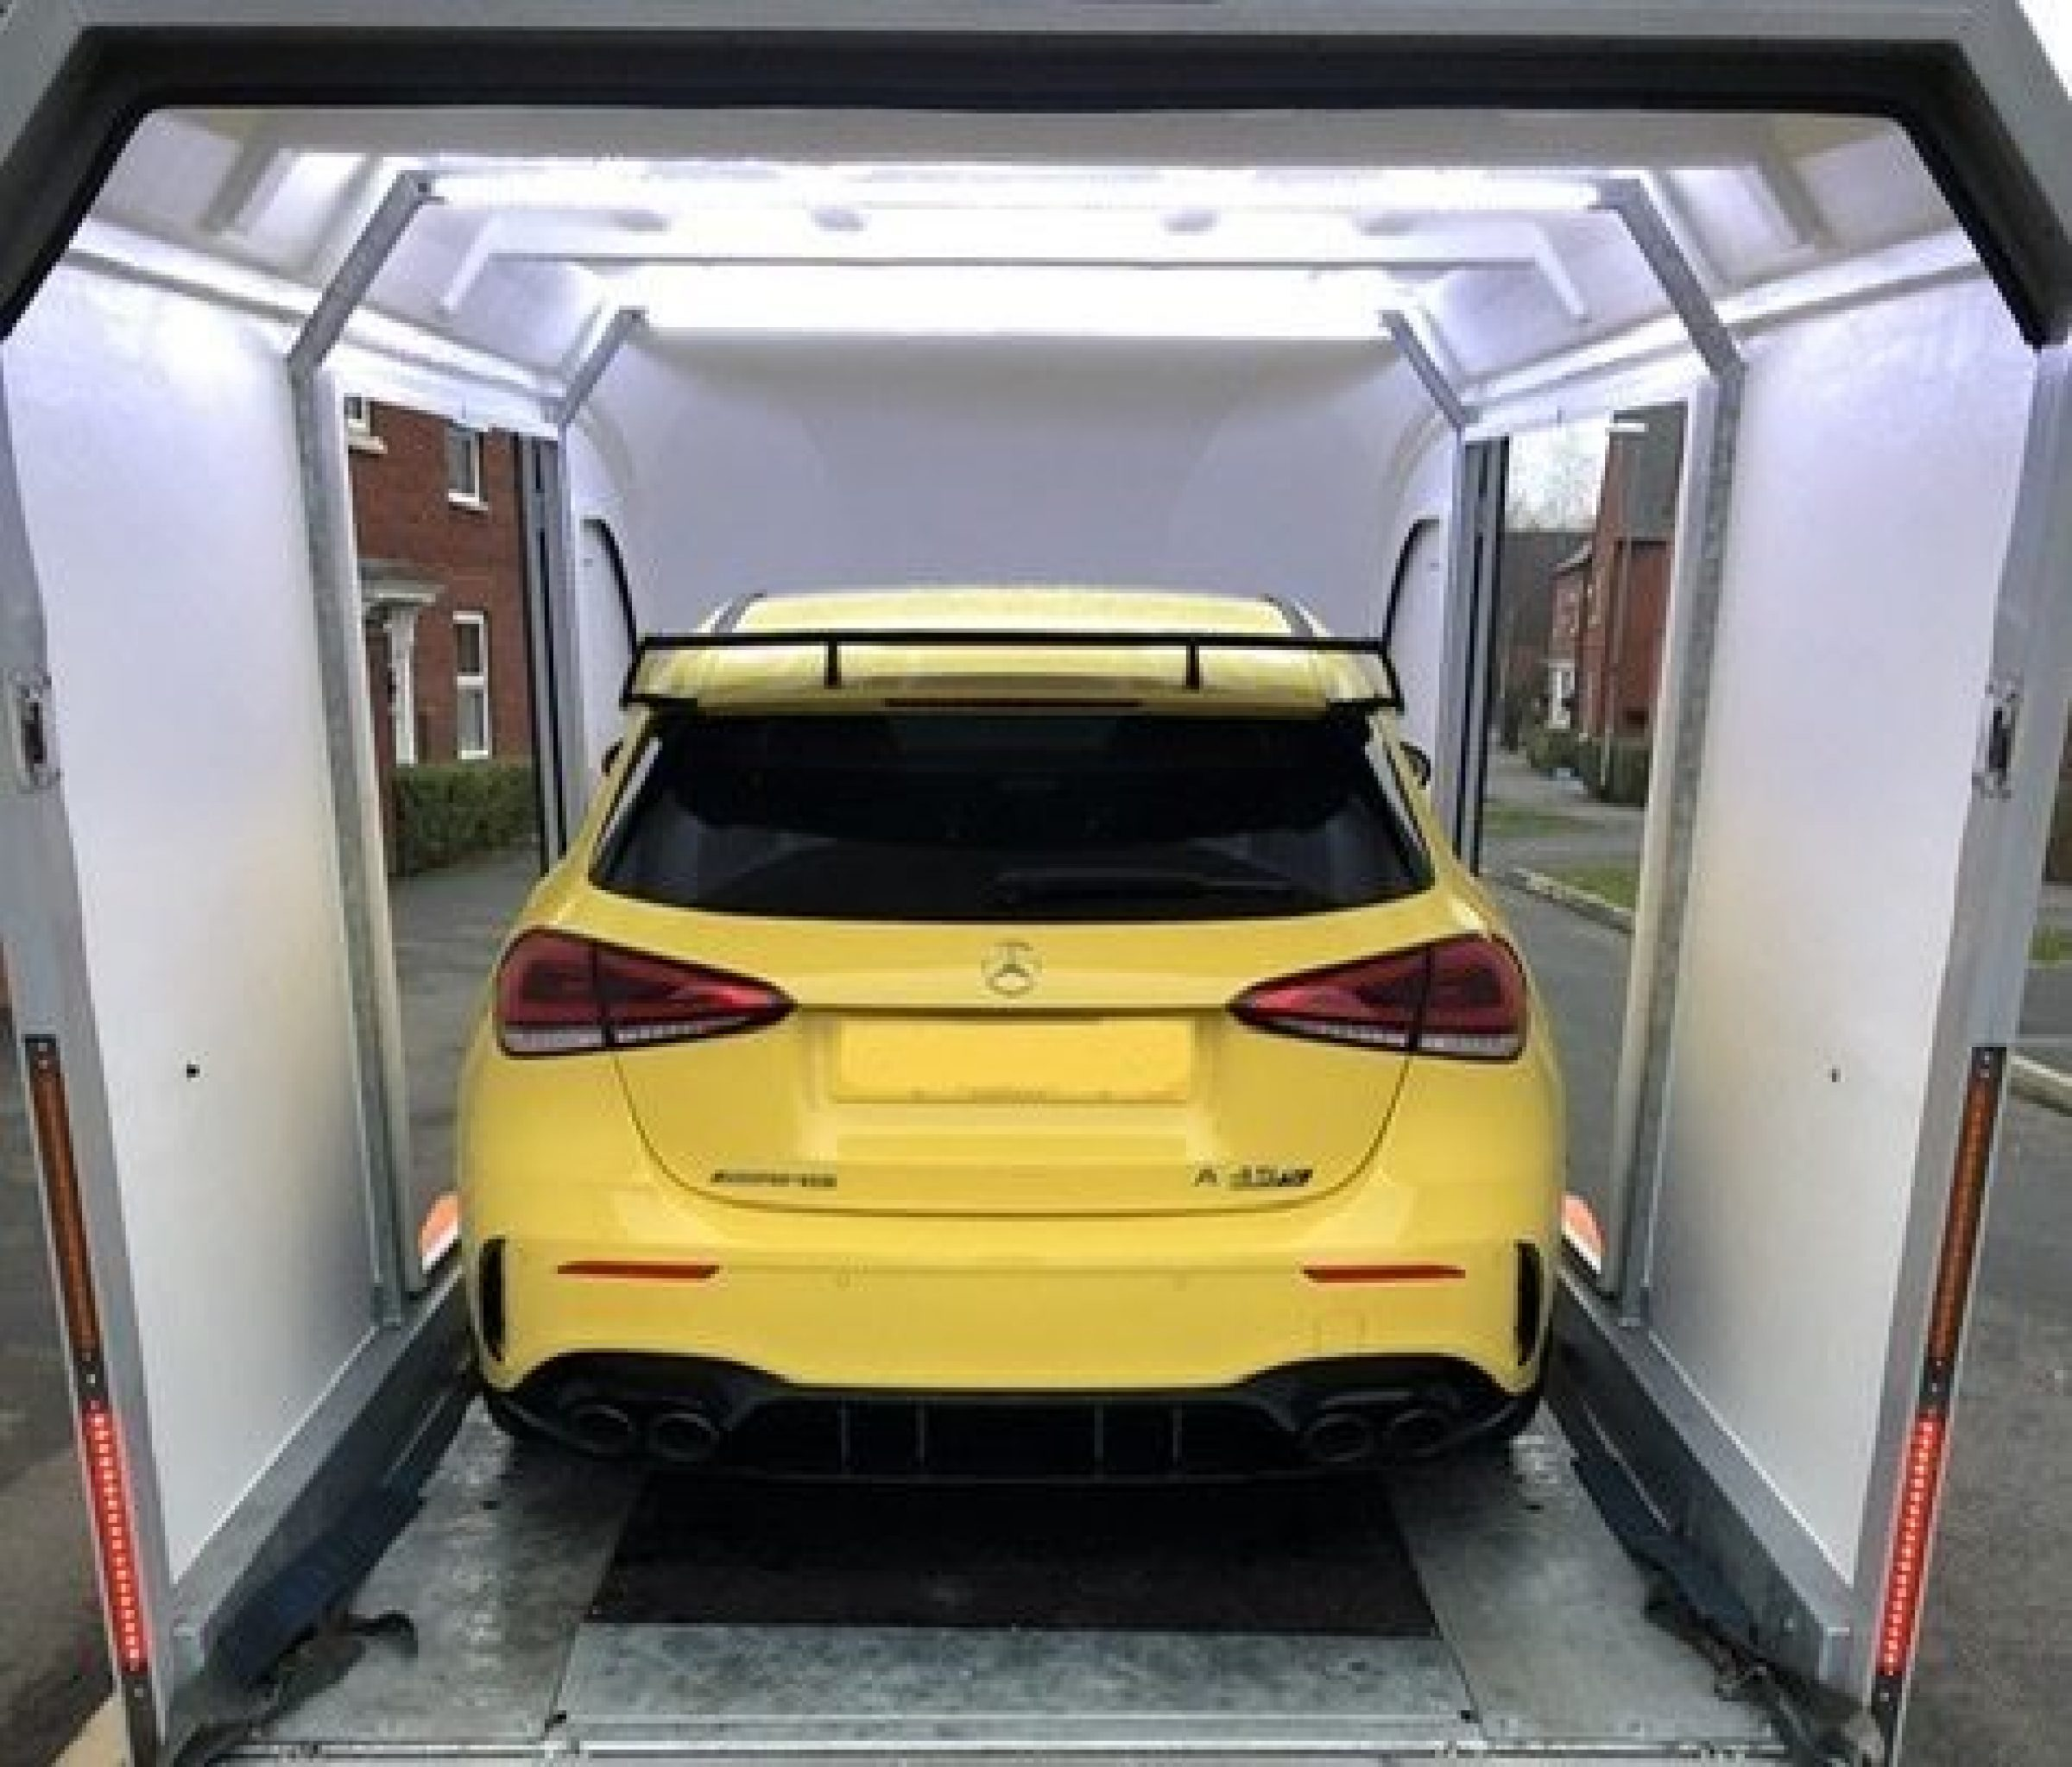 New car delivered in enclosed trailer